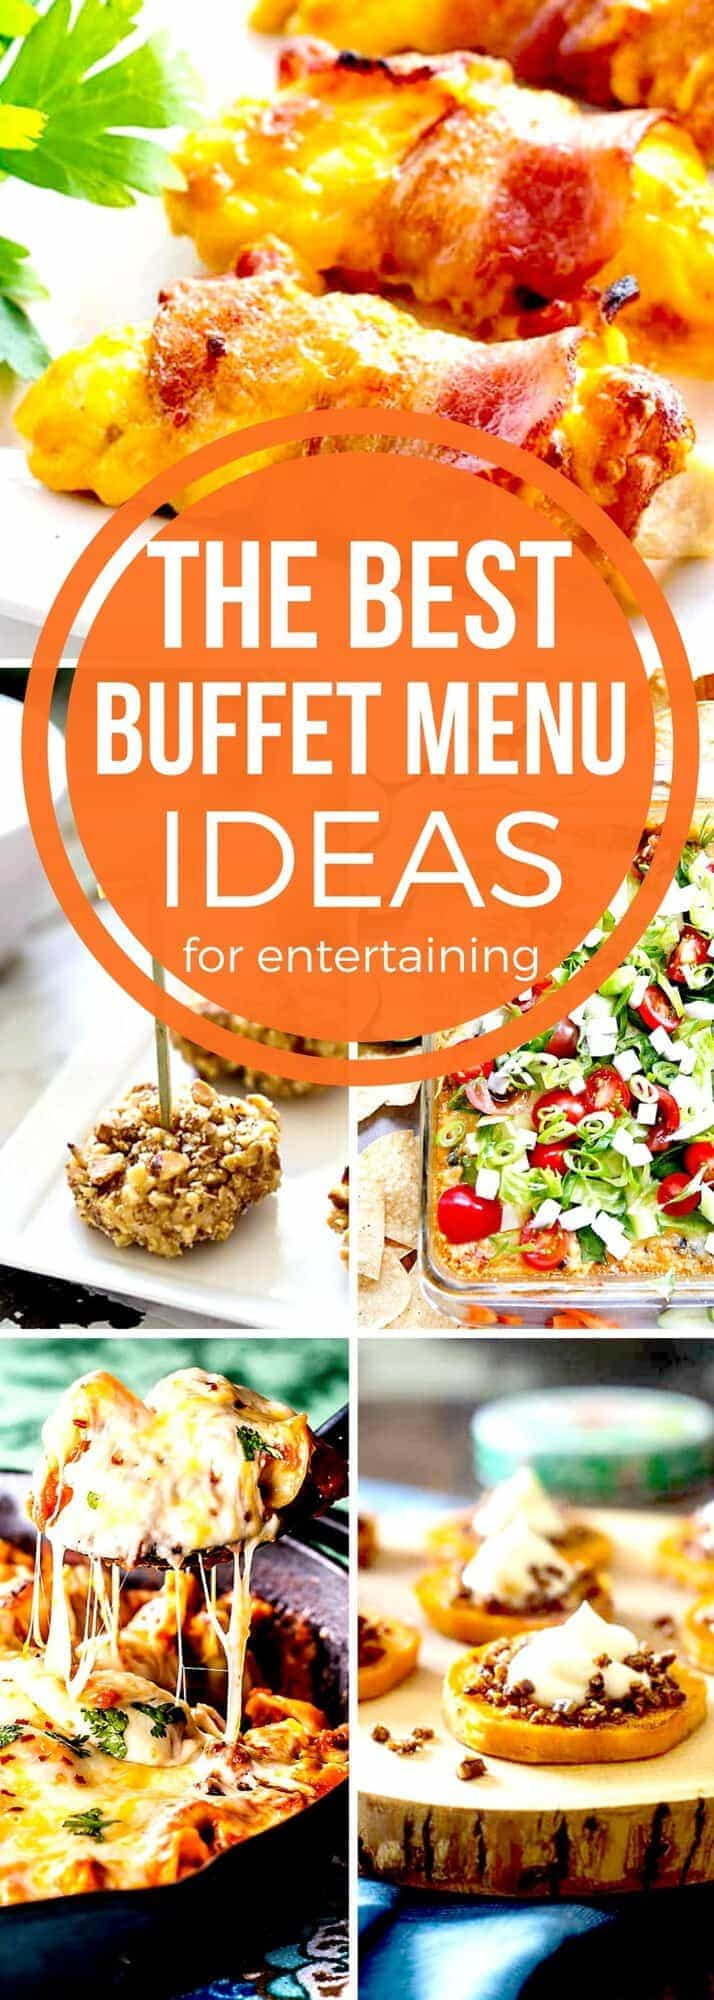 Easily plan FUN & FESTIVE parties for large groups with our BEST Buffet Menu Ideas! Appetizer recipes, side dish recipes, main dish dinner recipes & dessert recipes too, we've got you covered! Whether you are planning a holiday party for Christmas or New Year's Eve or maybe even a wedding rehearsal or reception, our collection of Buffet Menu Ideas will help you get organized! #SundaySupper #BuffetMenuIdeas #HolidayRecipes #MenuPlanning